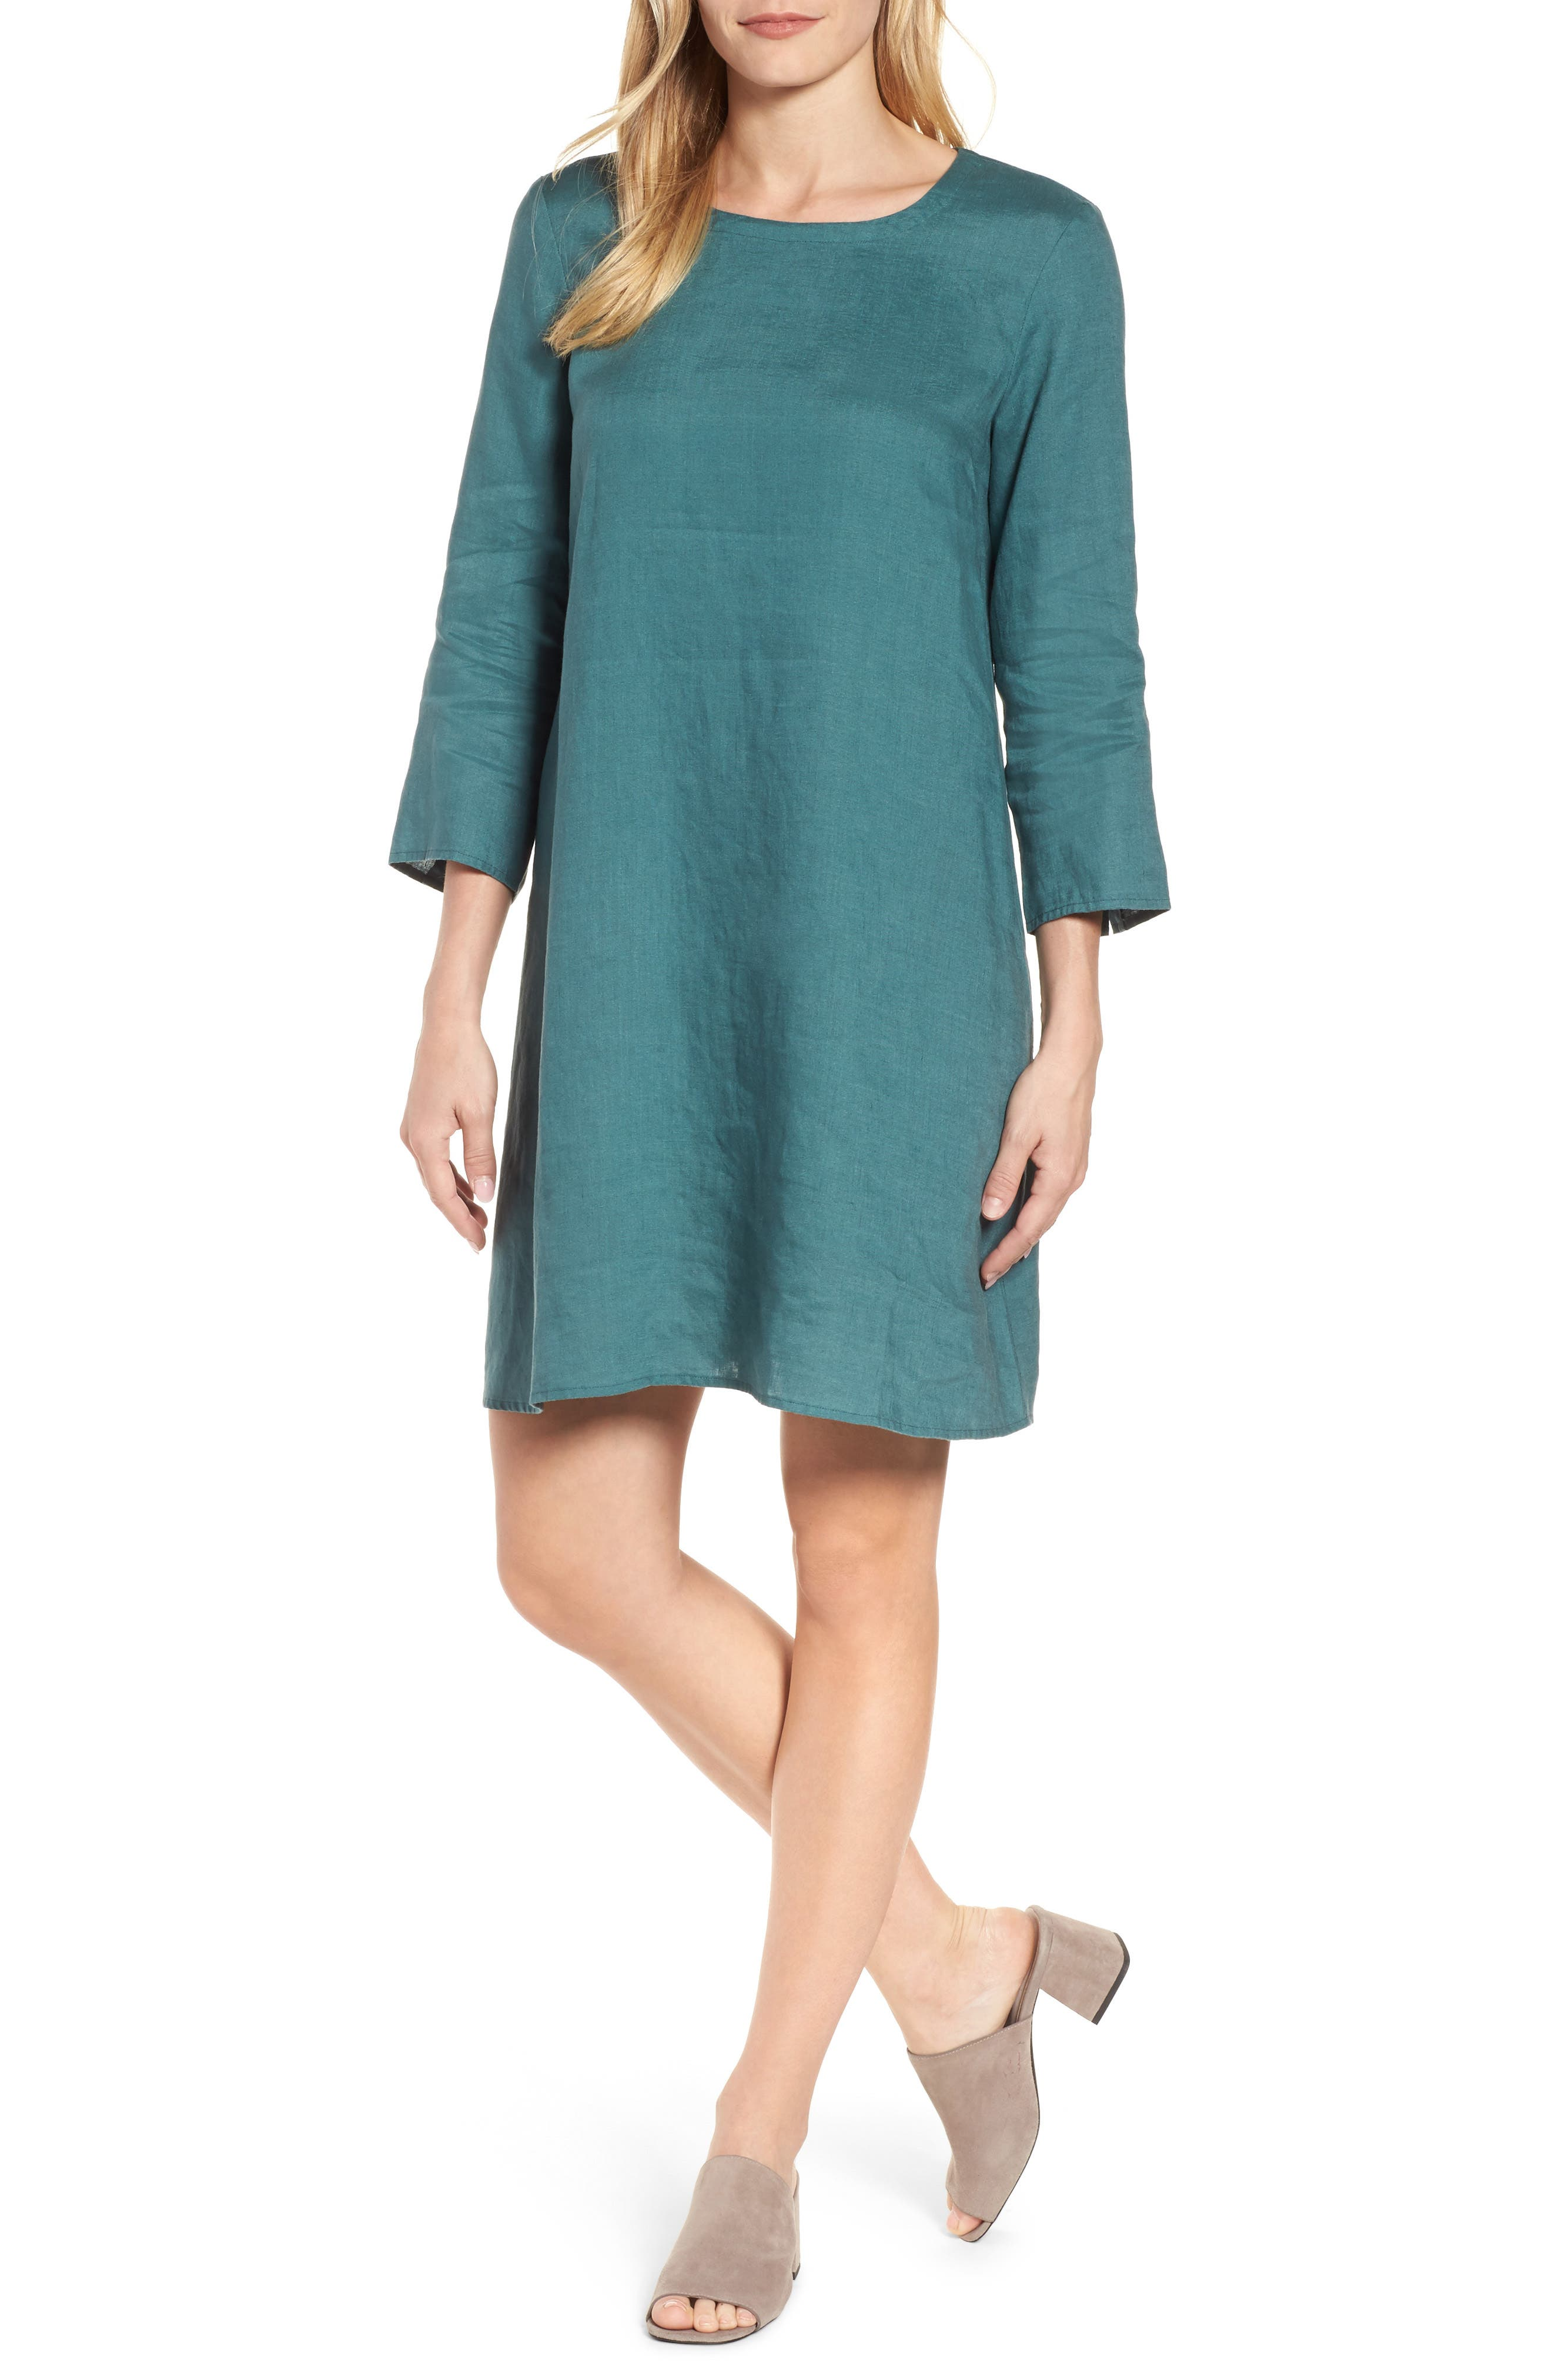 Eileen Fisher Organic Linen Round Neck Shift Dress